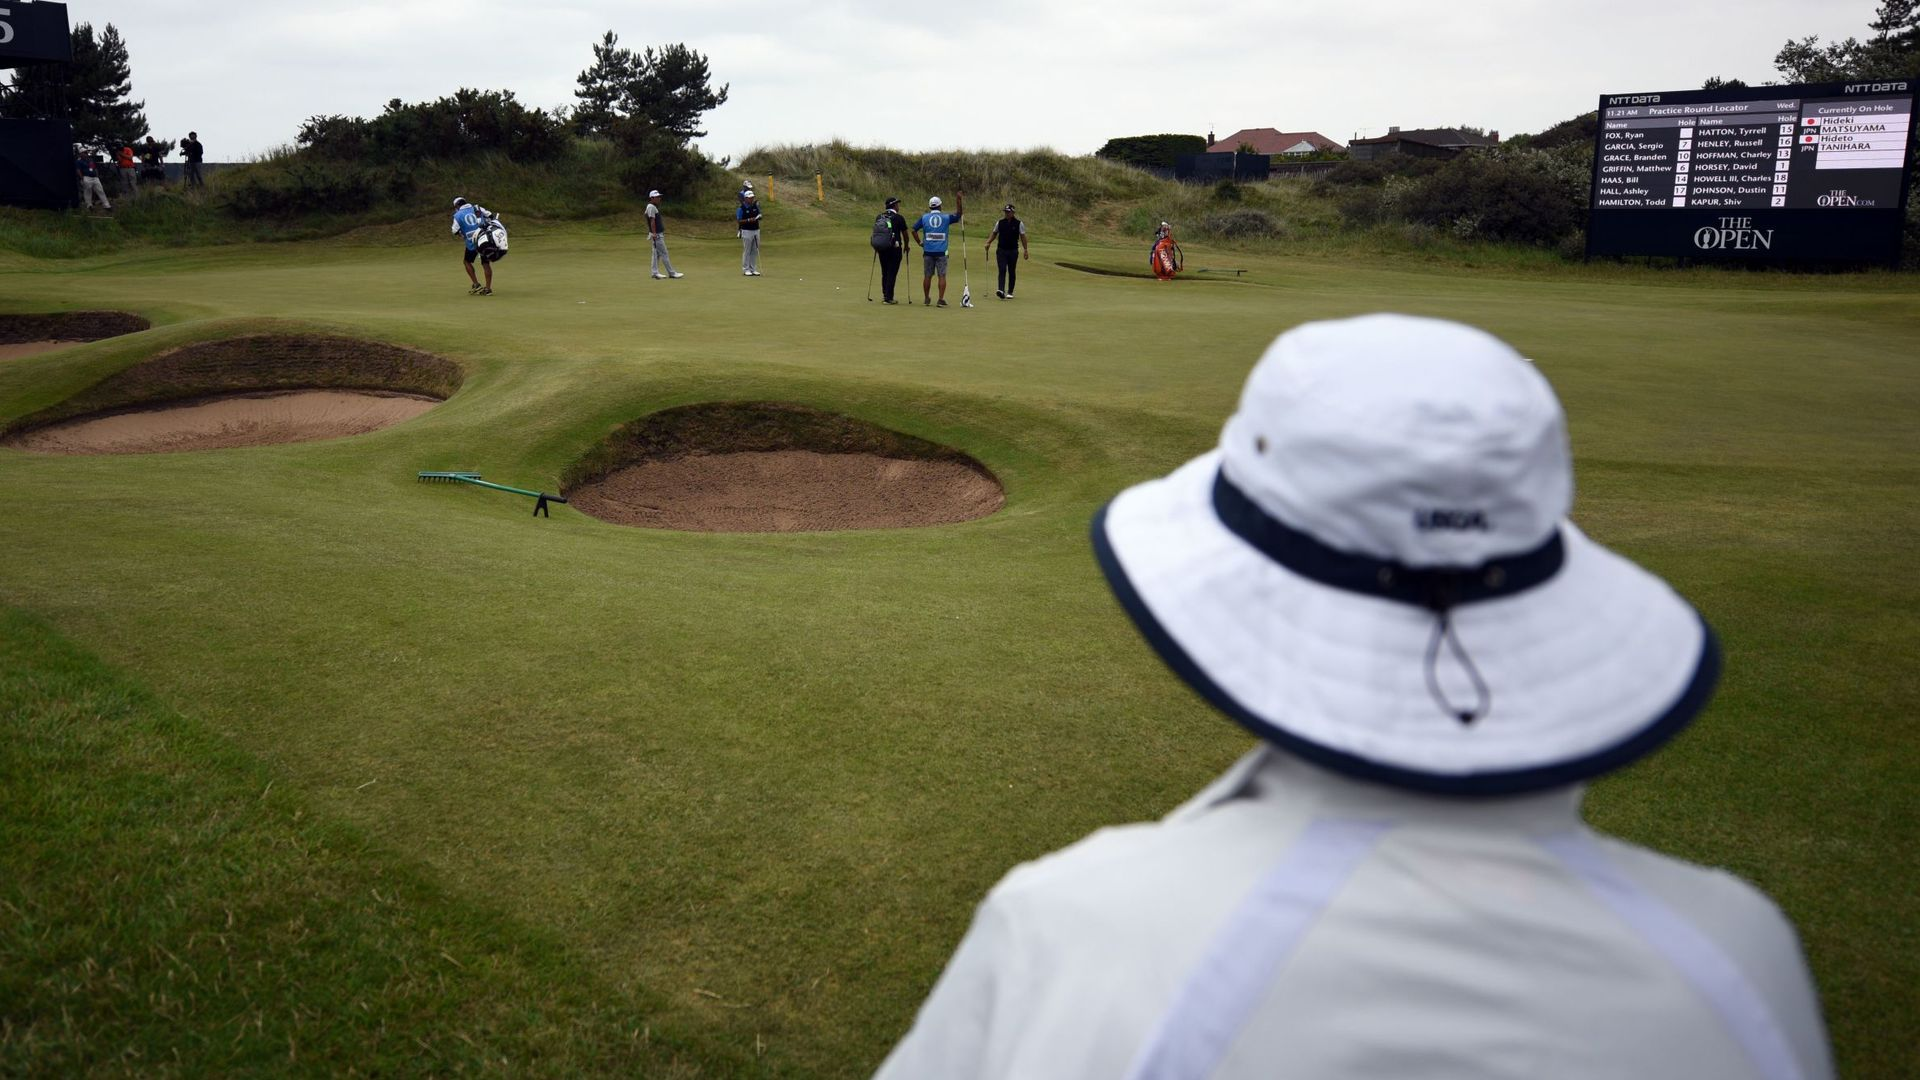 'Some sports activity' allowed; English golf courses can reopen